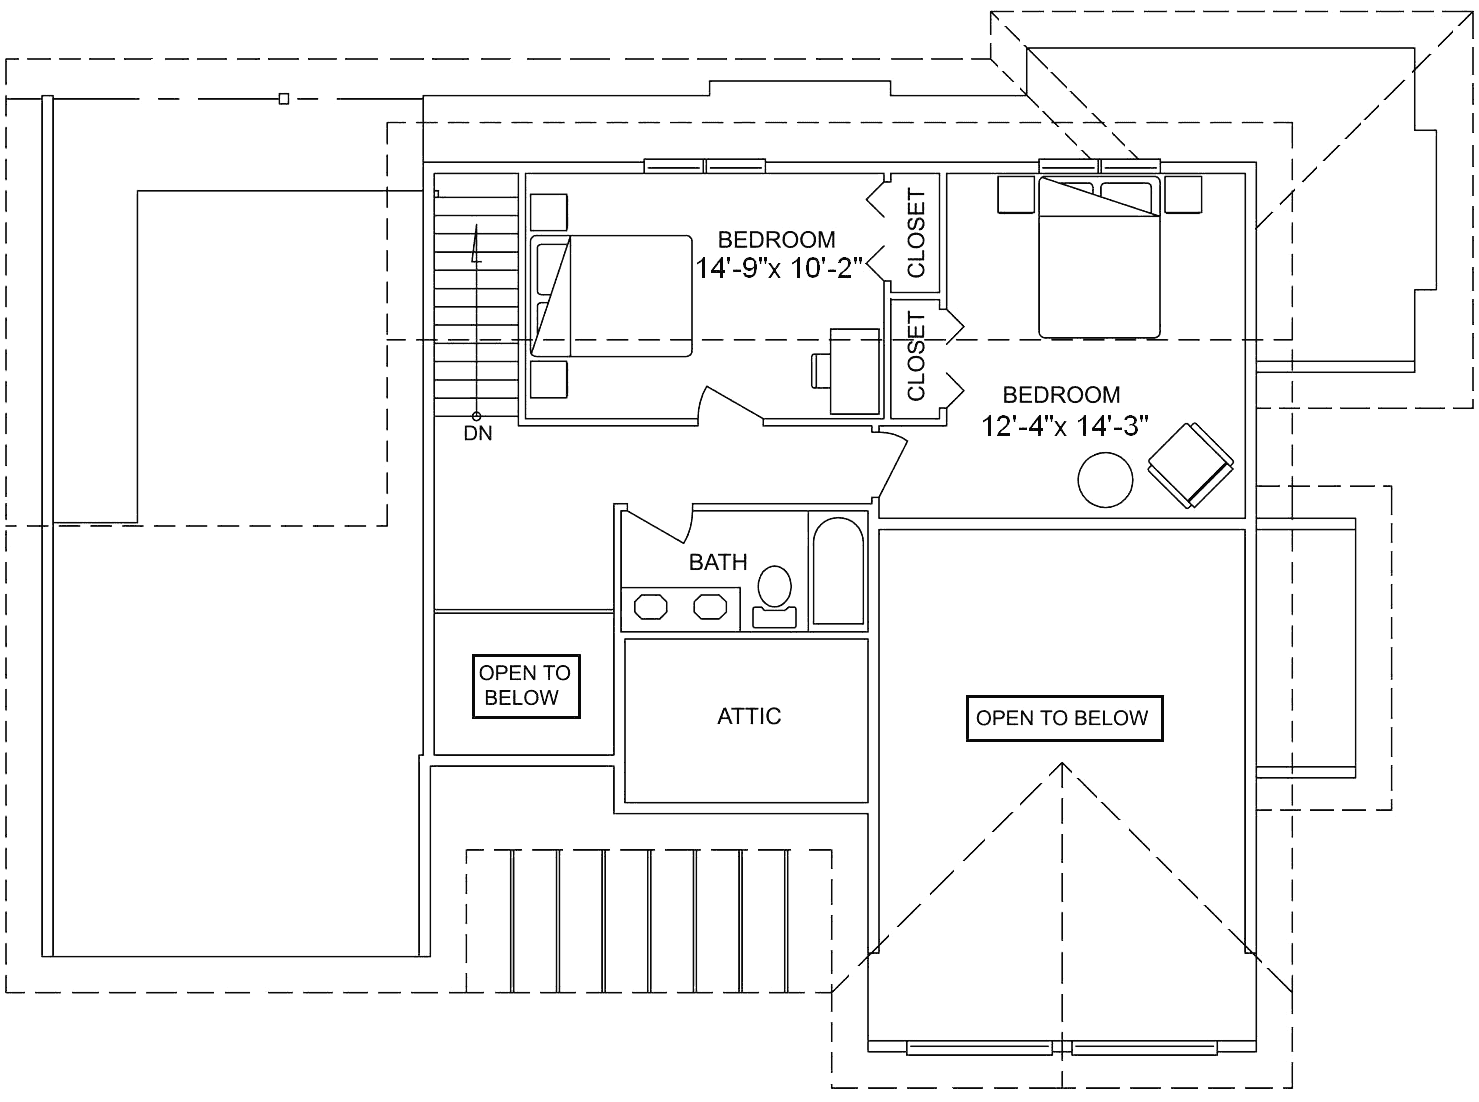 <strong>Upper Floor: 558 square feet (51.82 m²)</strong>